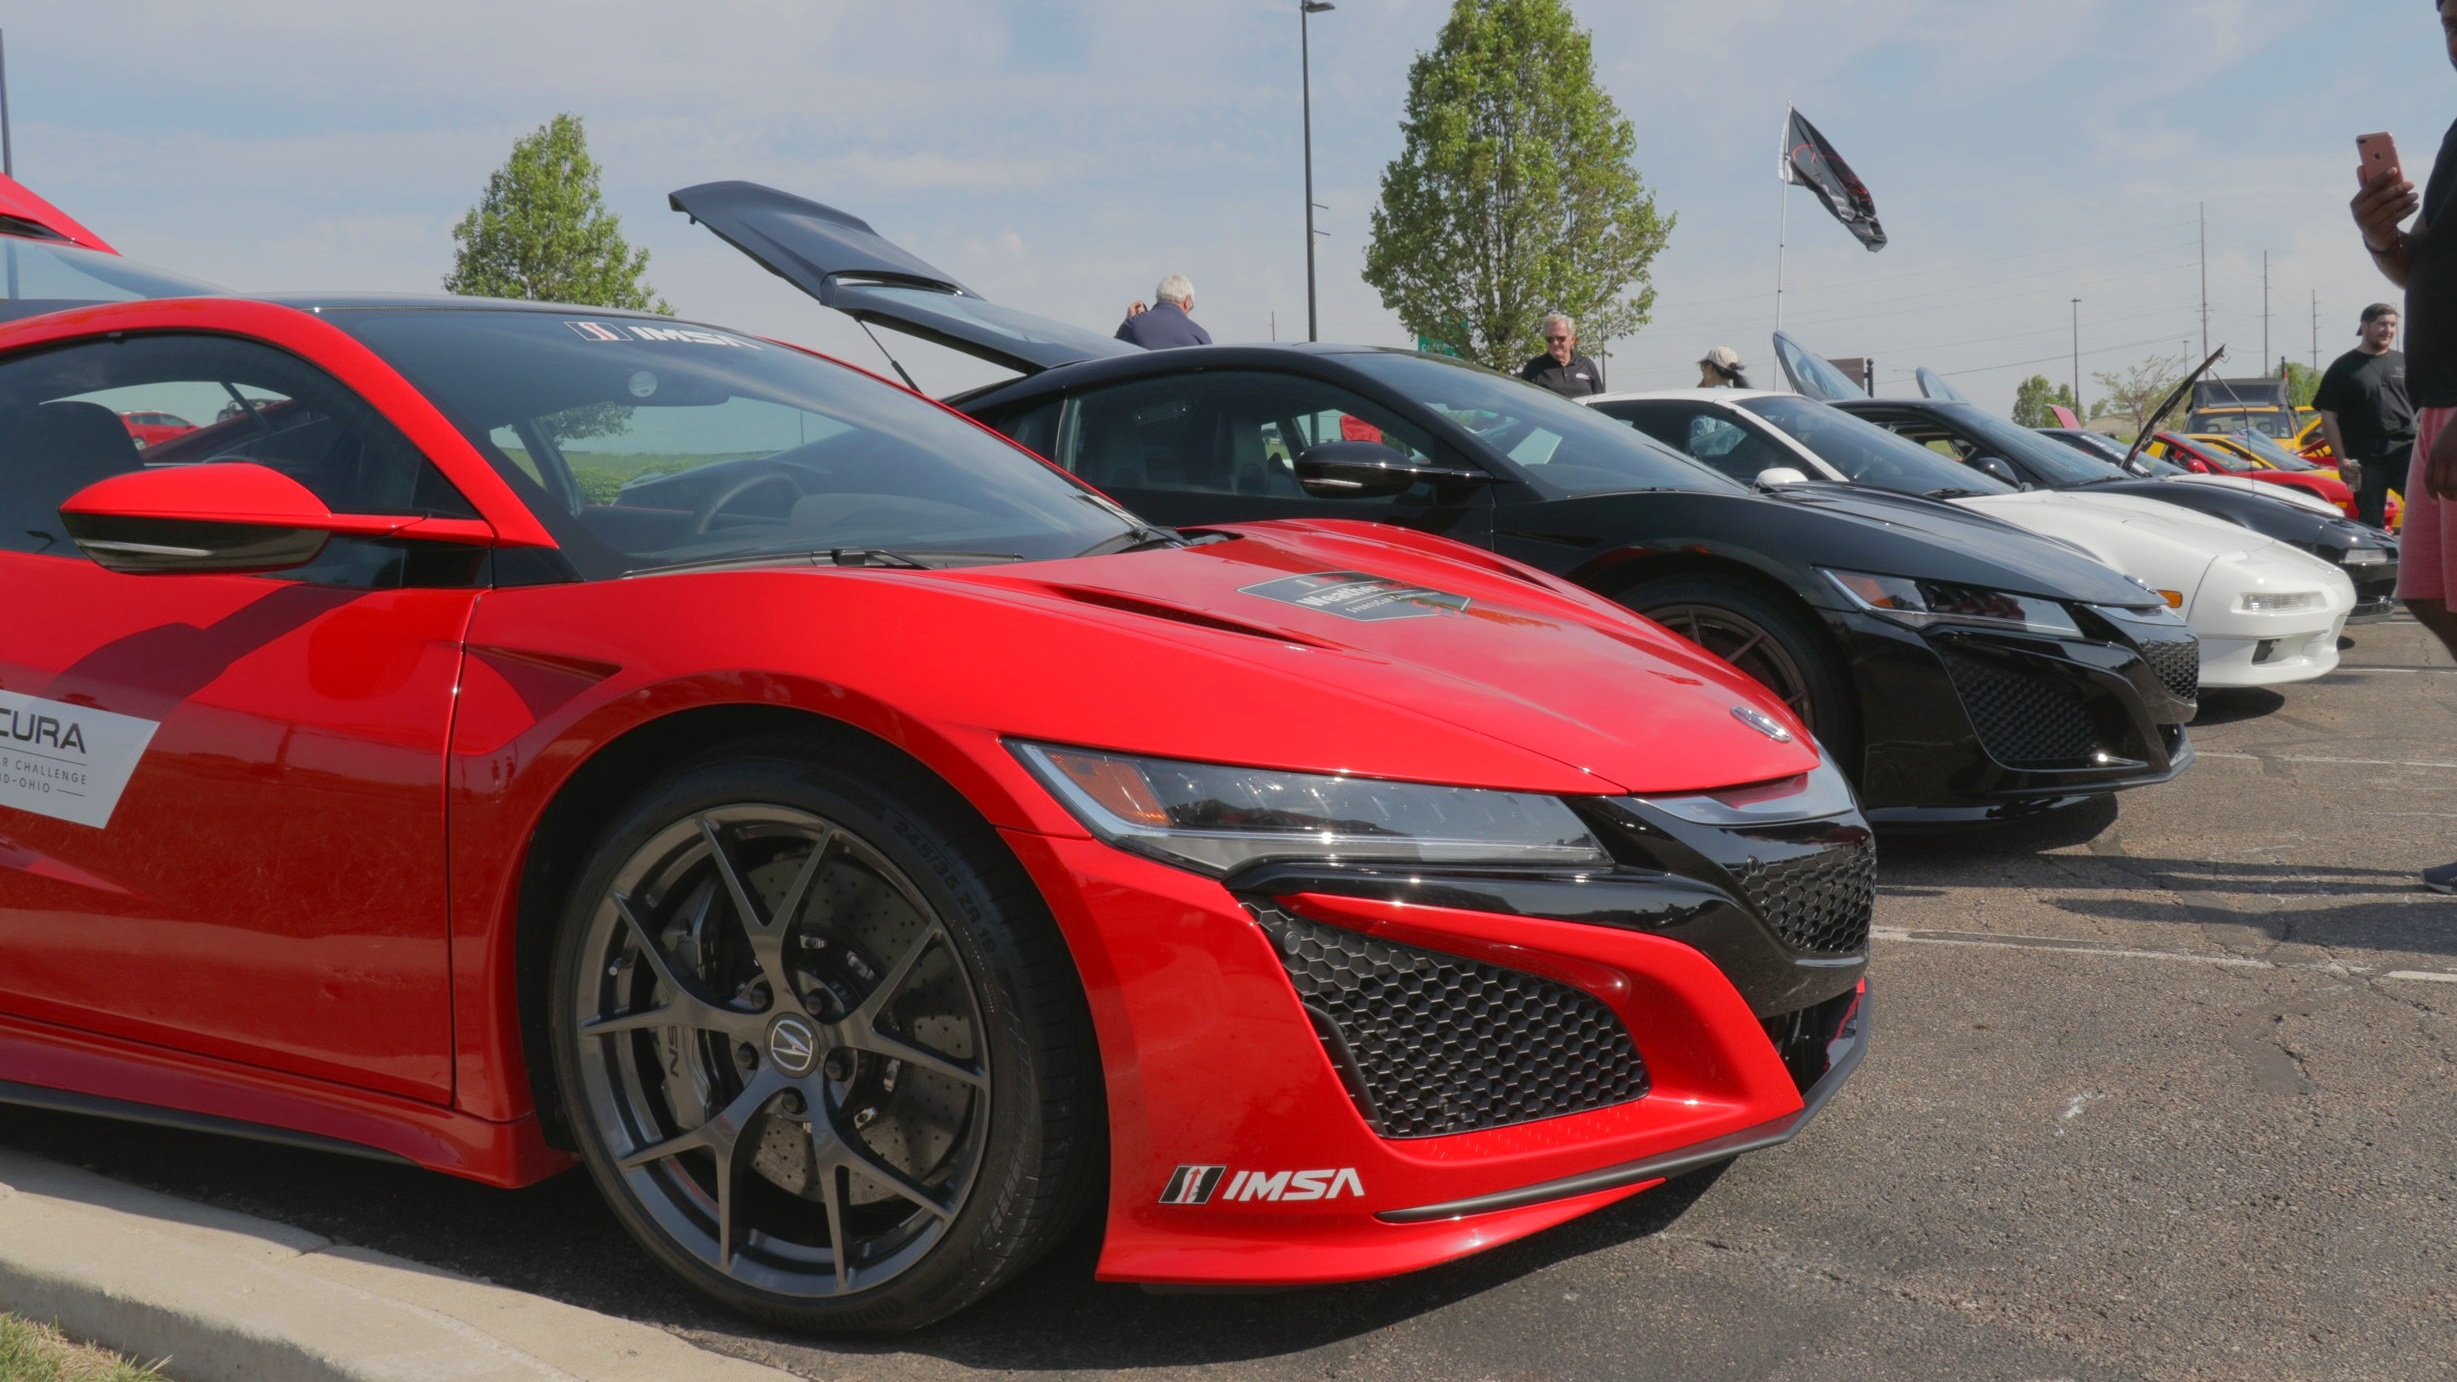 Acura NSX - IMSA Weathertech Promotional Car - Dayton Cars and Coffee.jpg